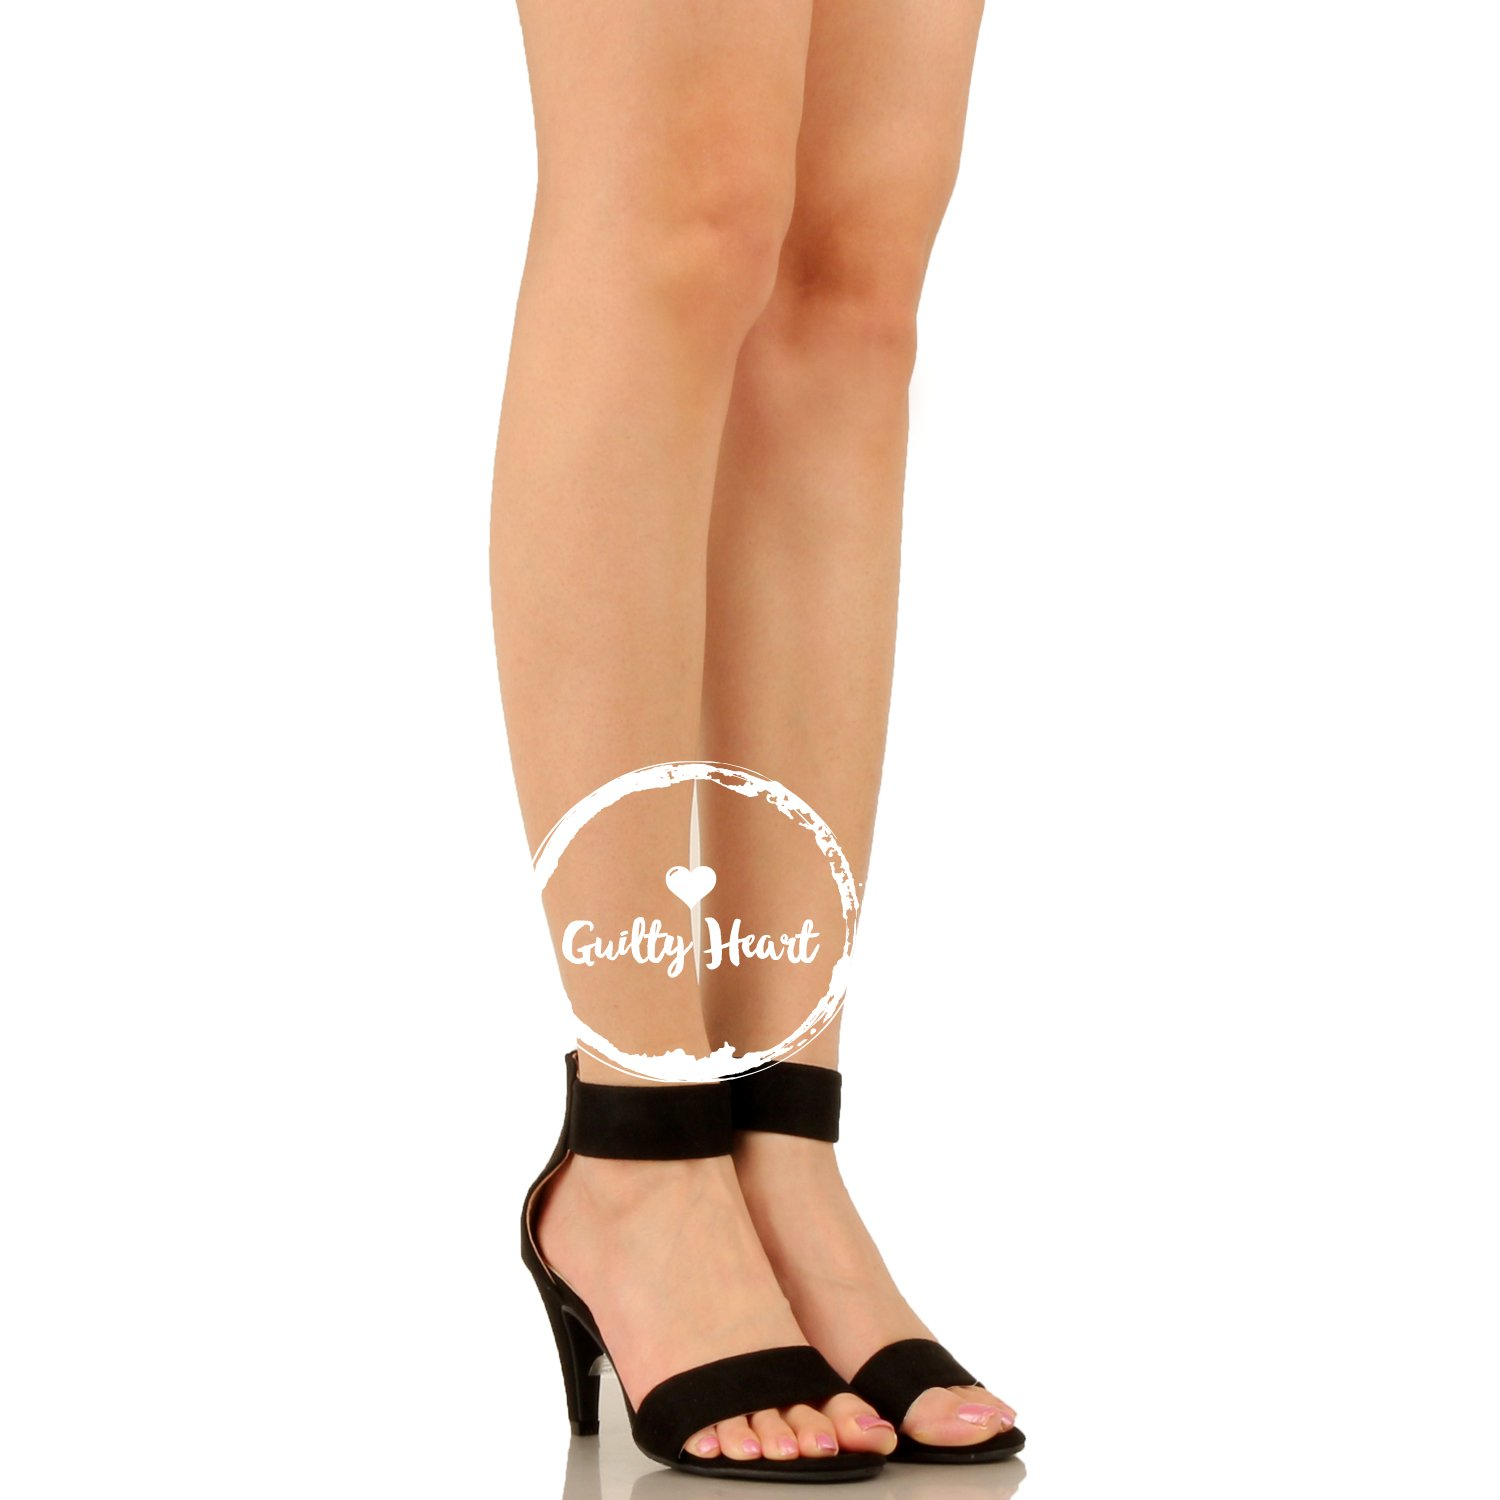 Guilty Shoes Womens Classic Comfort Sexy Open Toe Mid Heel Ankle Strap Dress Stiletto Heeled-Sandals, Black Suede, 8 by Guilty Shoes (Image #5)